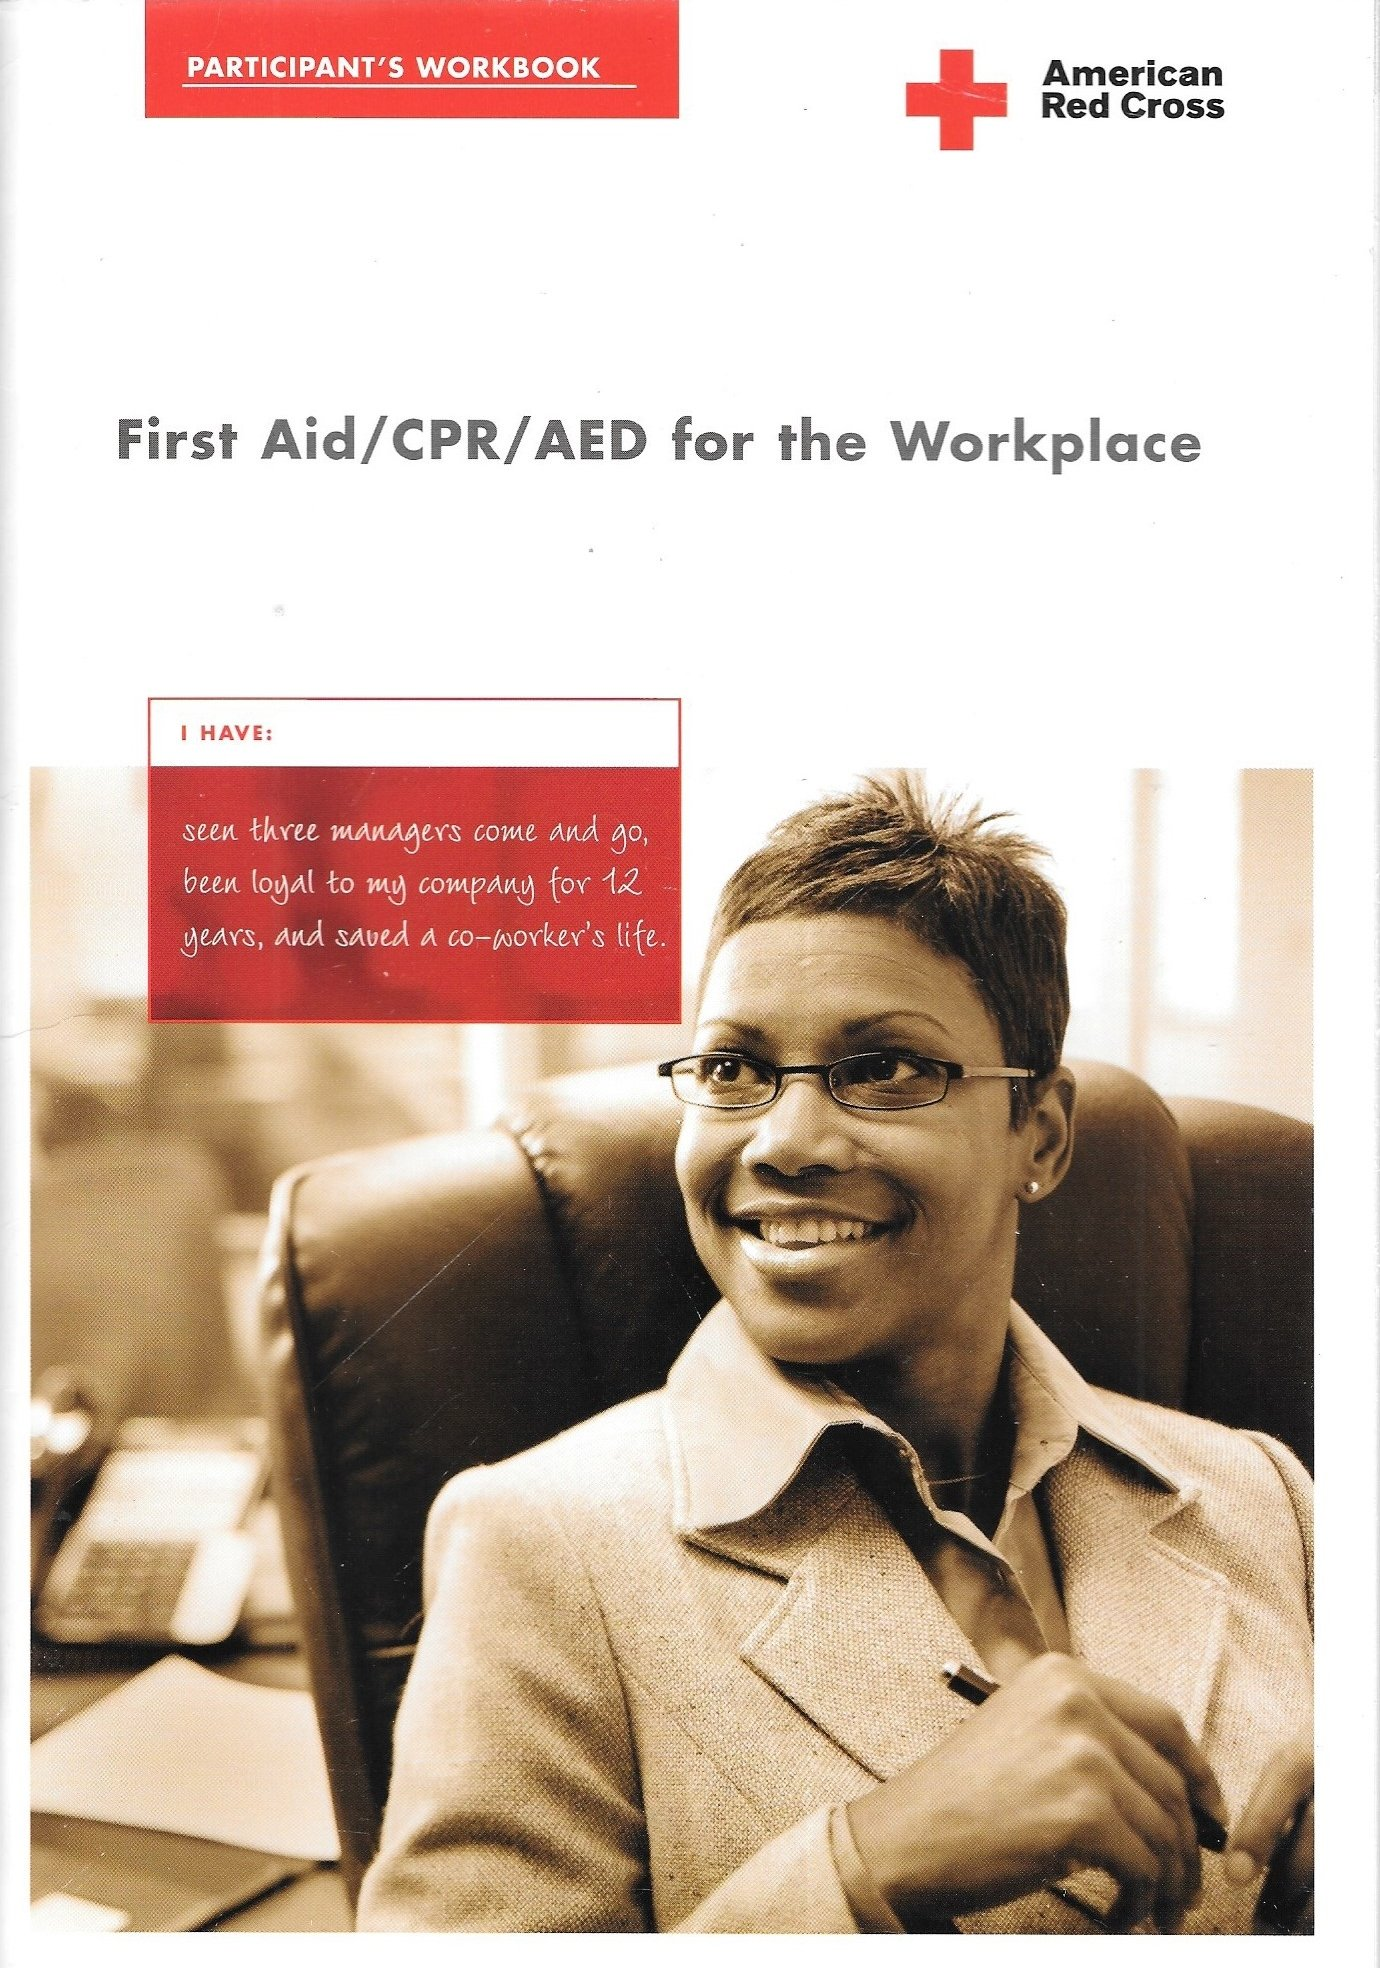 Download participants workbook- first aid/CPR/AED for the workplace pdf